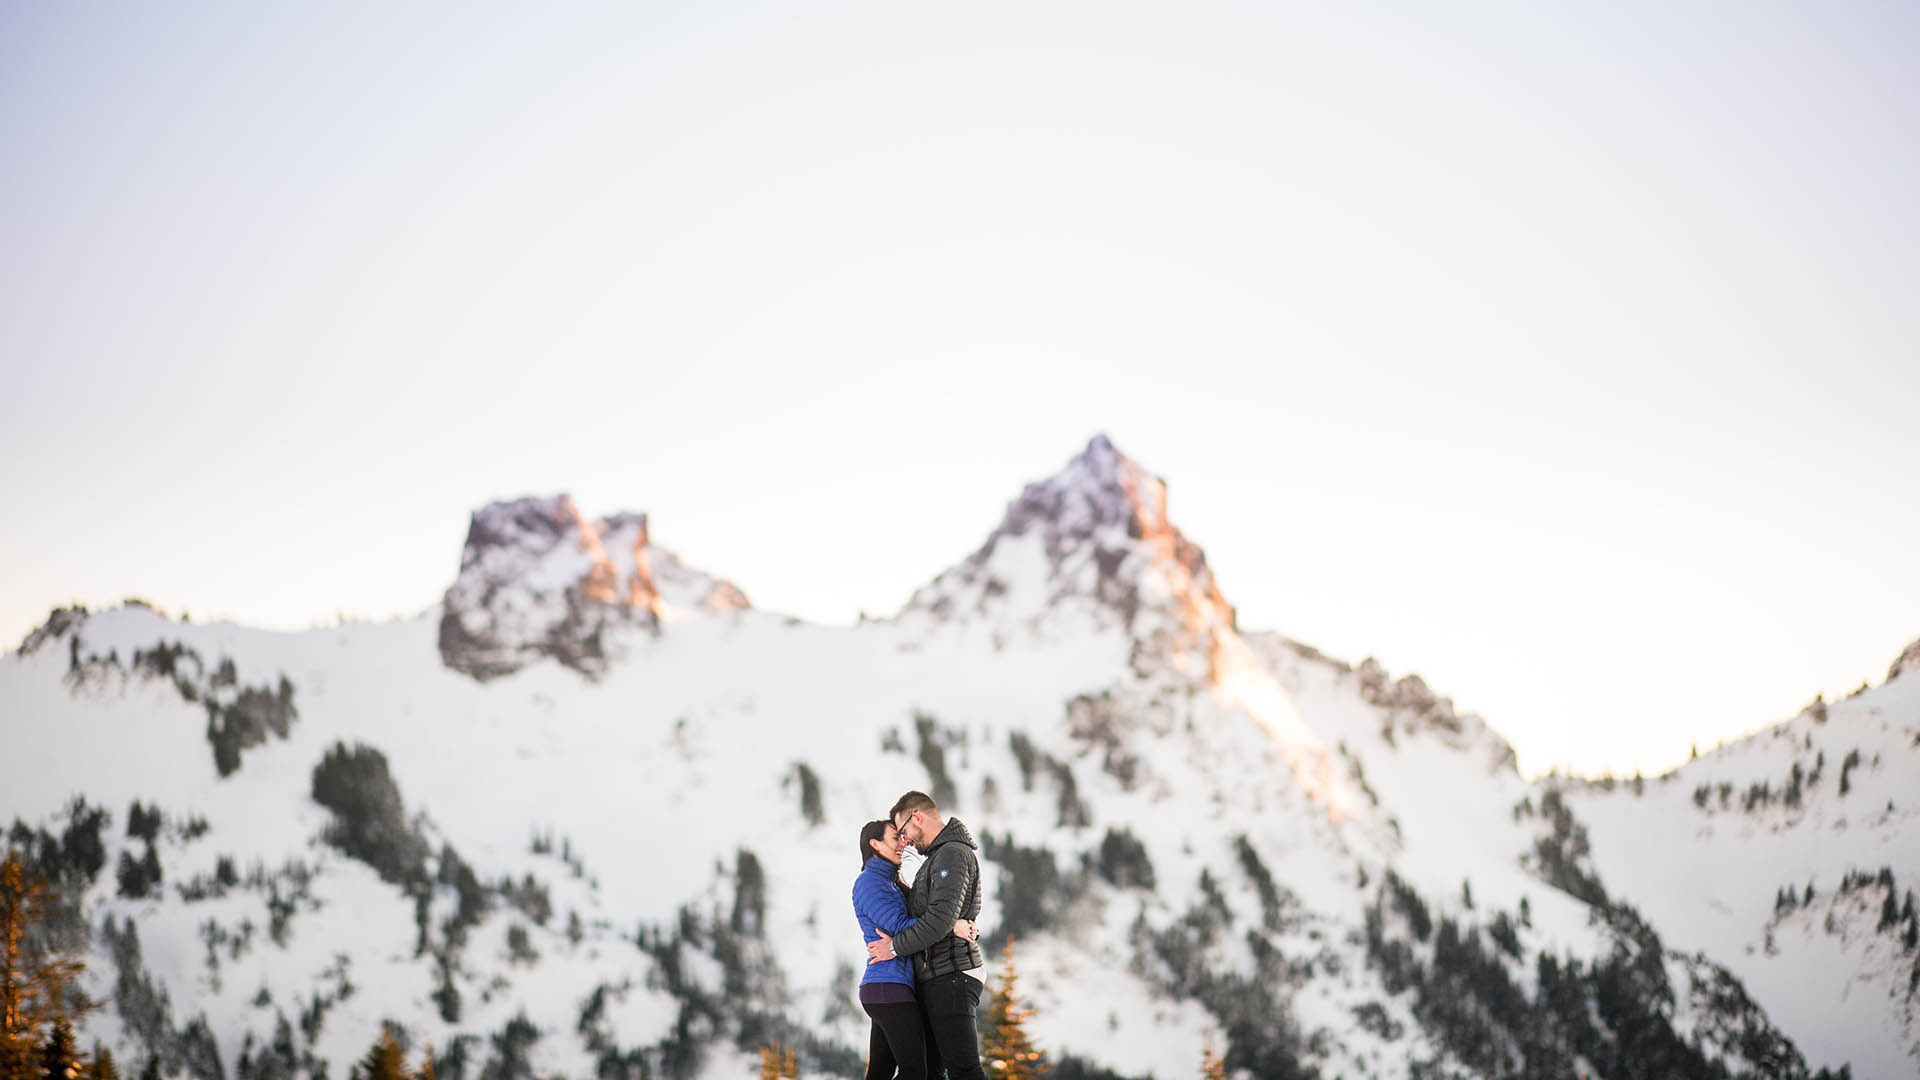 mount rainier winter engagement photos featured